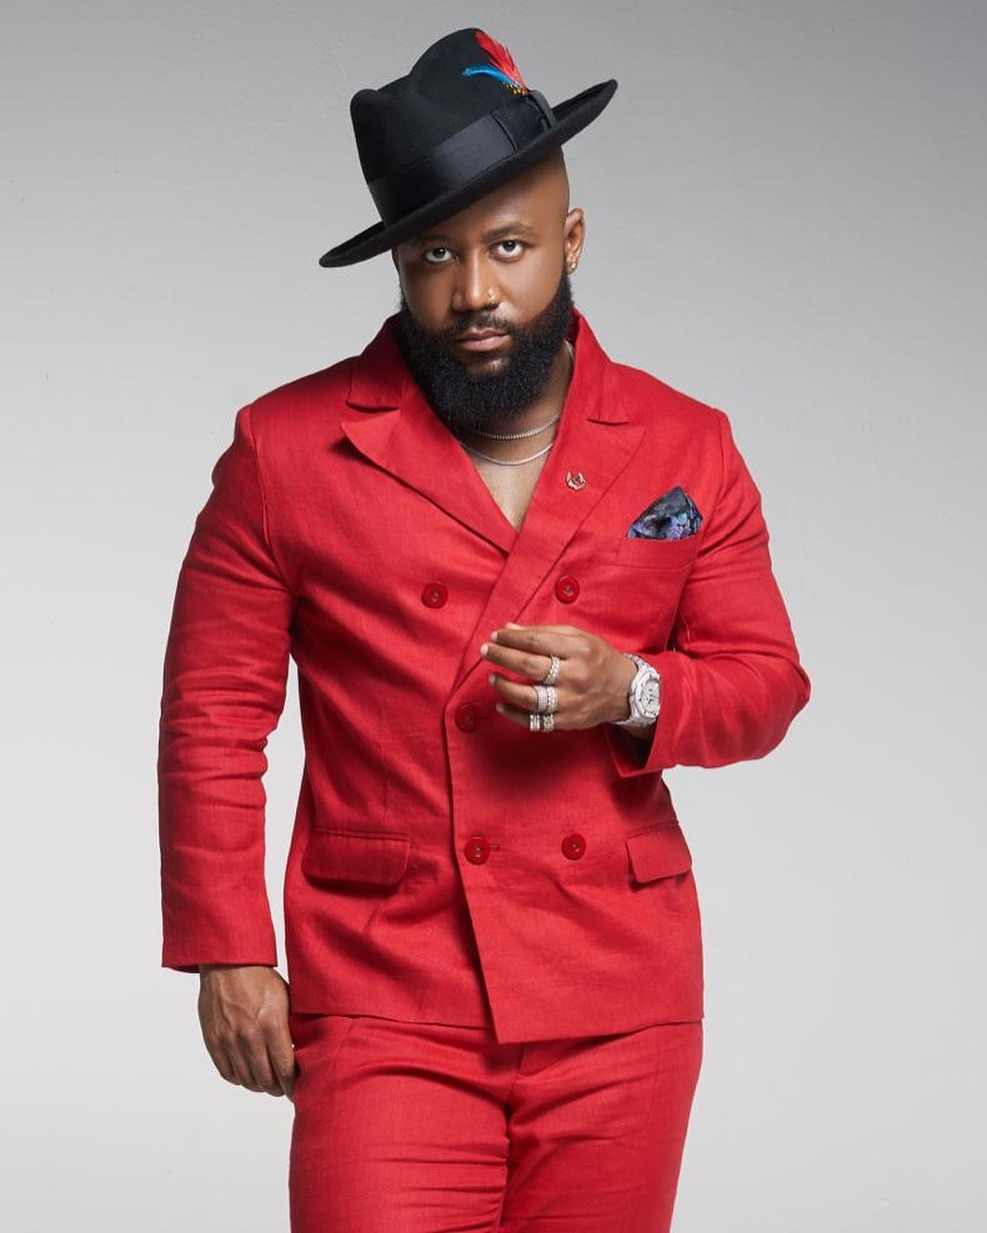 Cassper Nyovest - Biography, Wife, Family, Who is He? Quick Facts